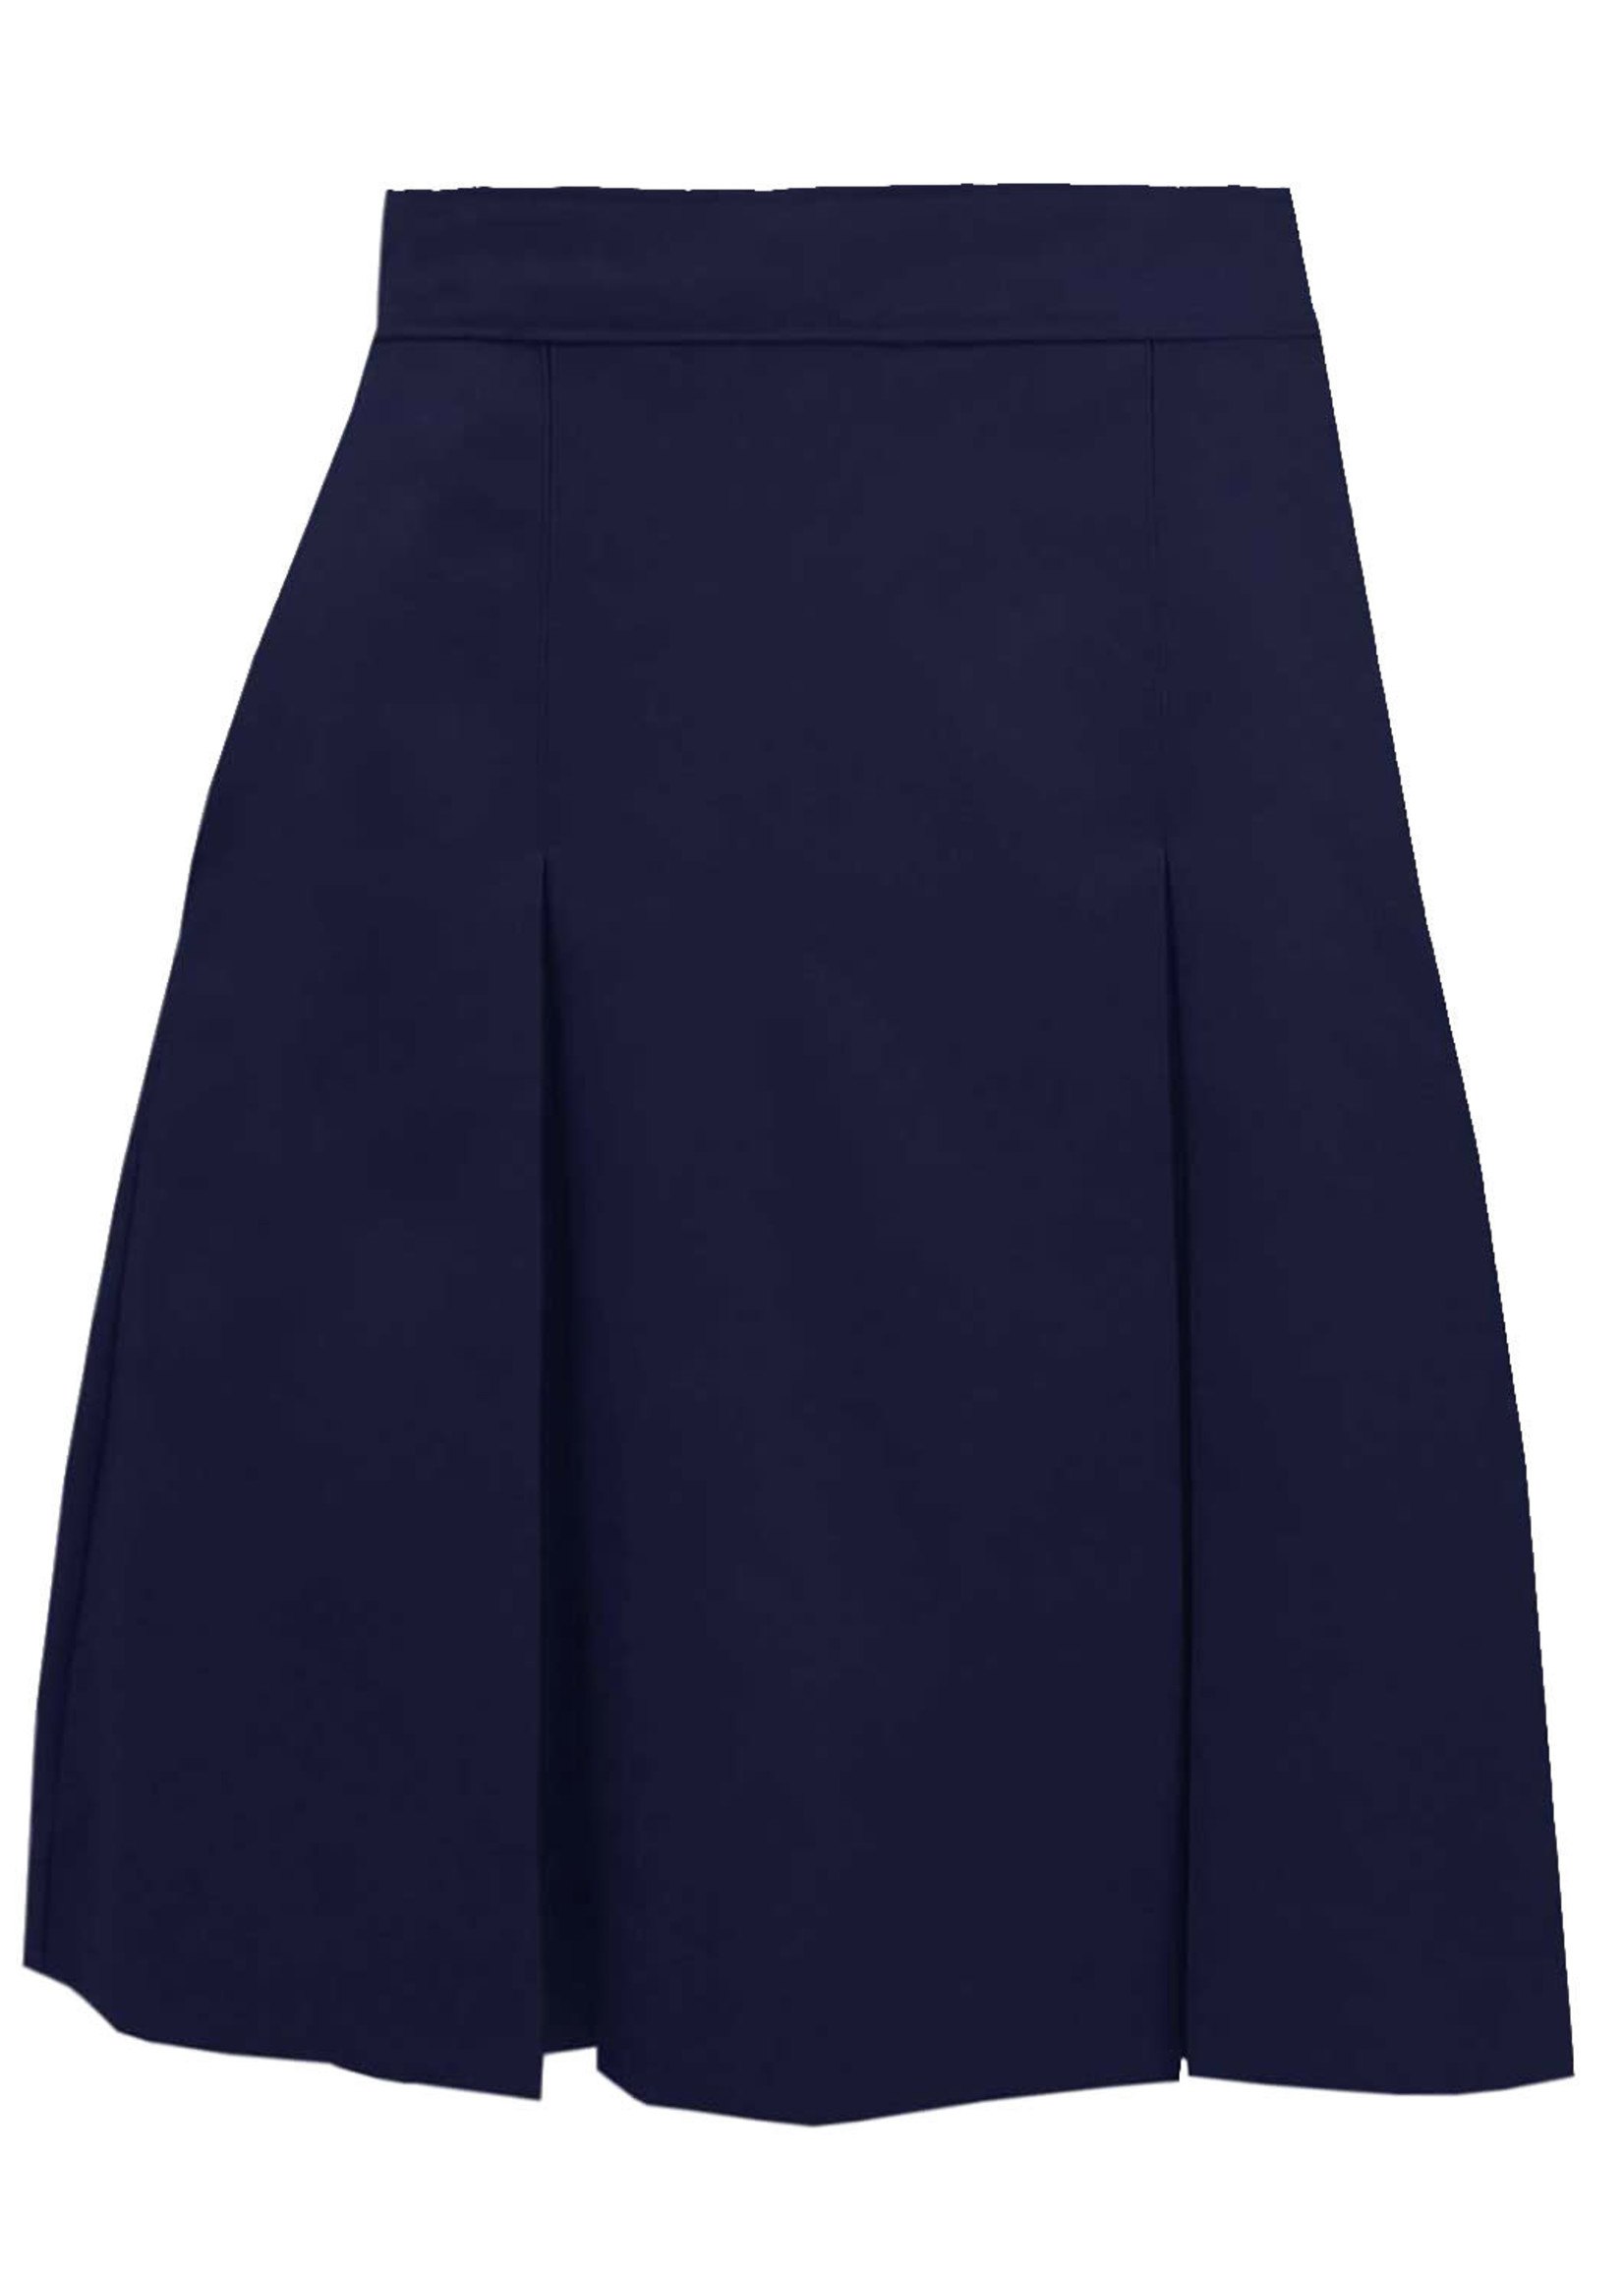 4 Pleat Solid Skirt (KN)